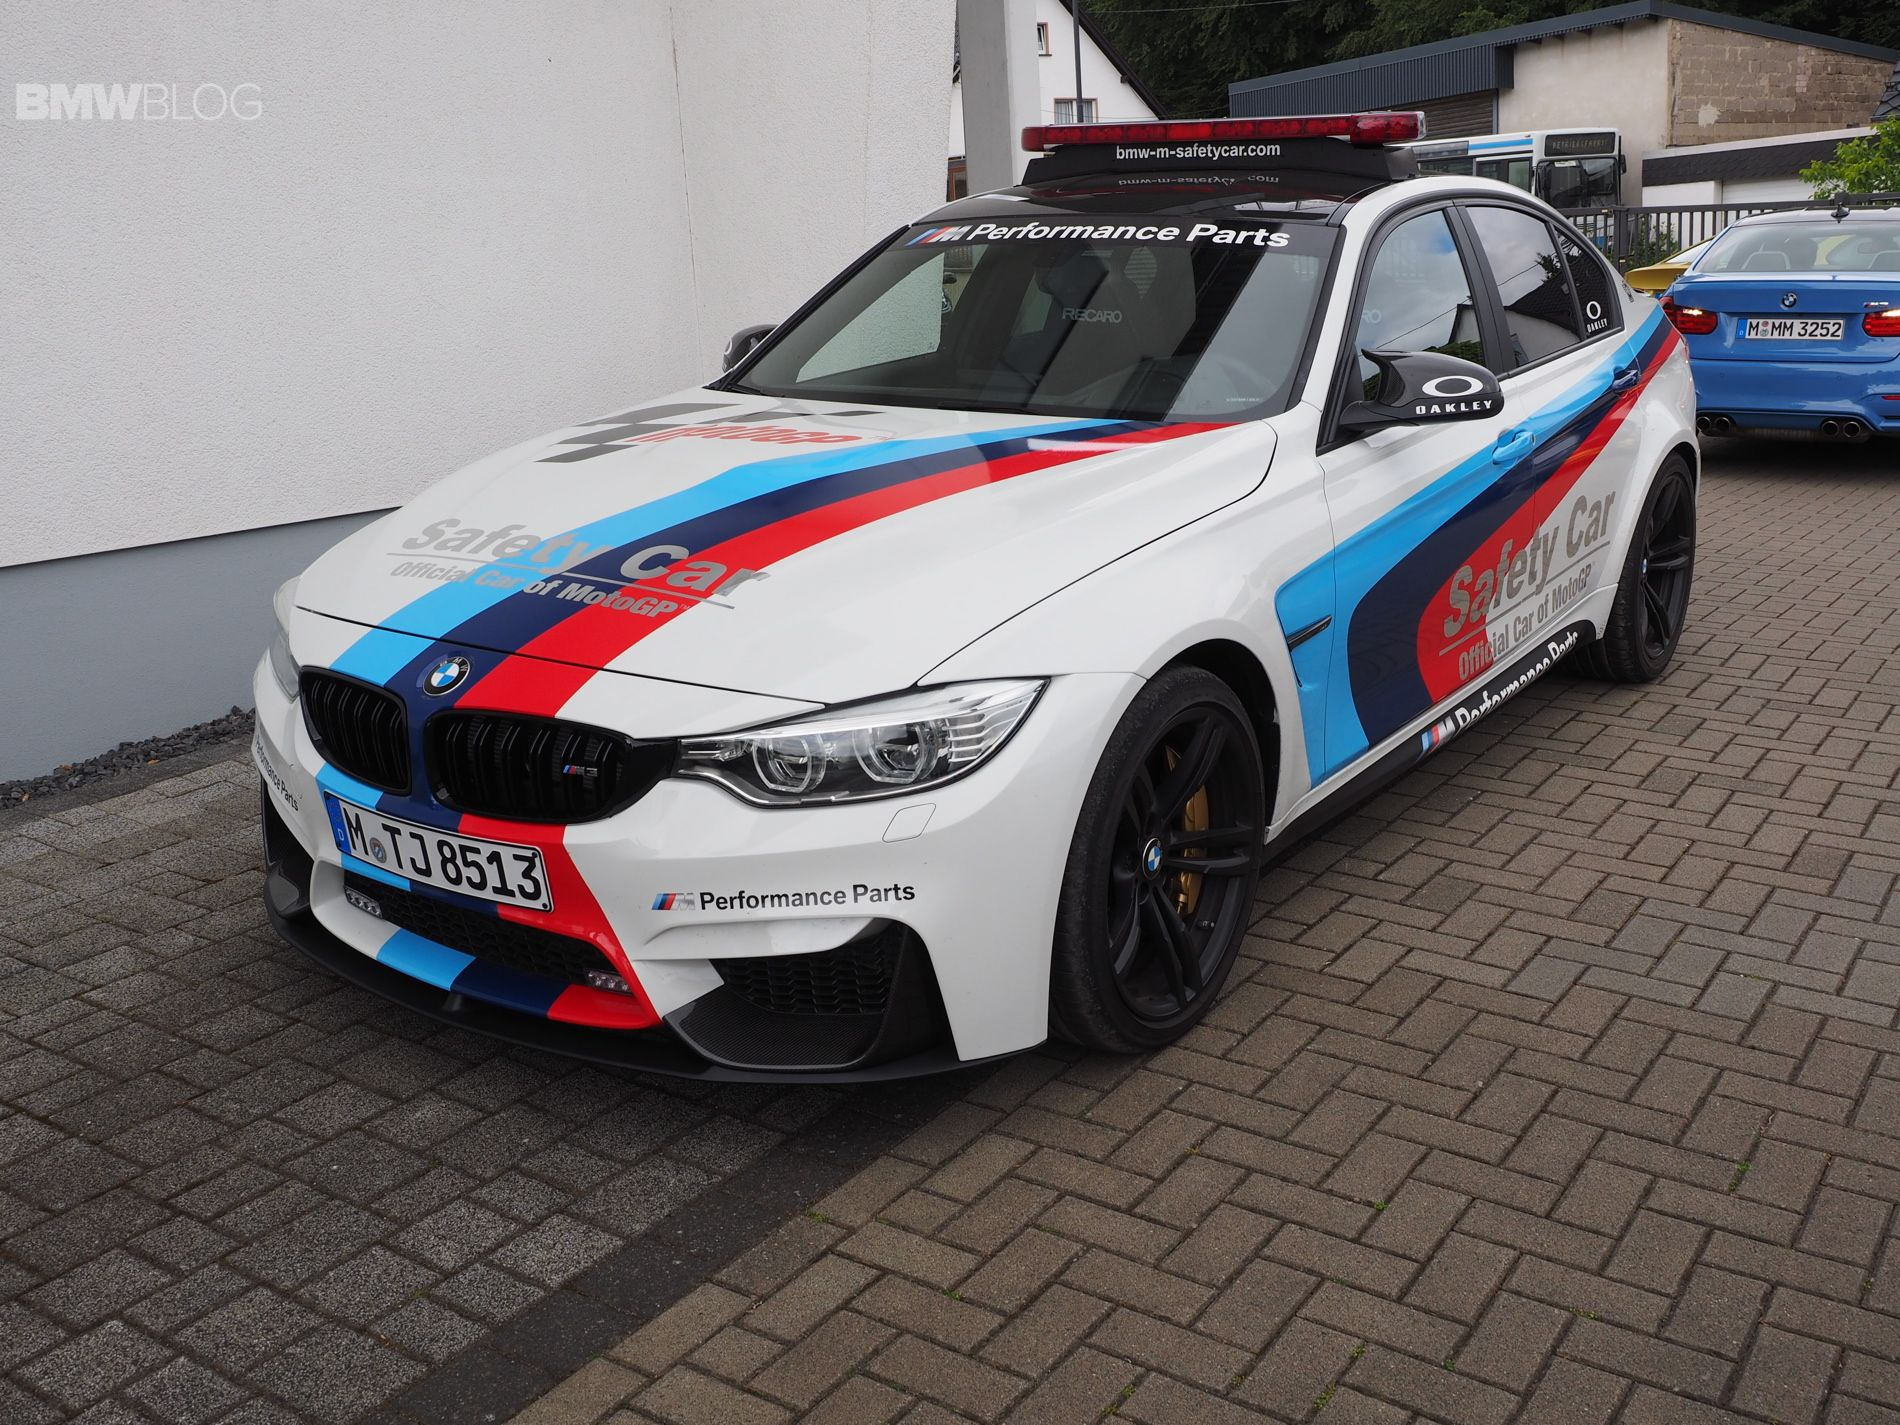 F80 BMW M3 Safety Car delivers a great exhaust sound Bmw